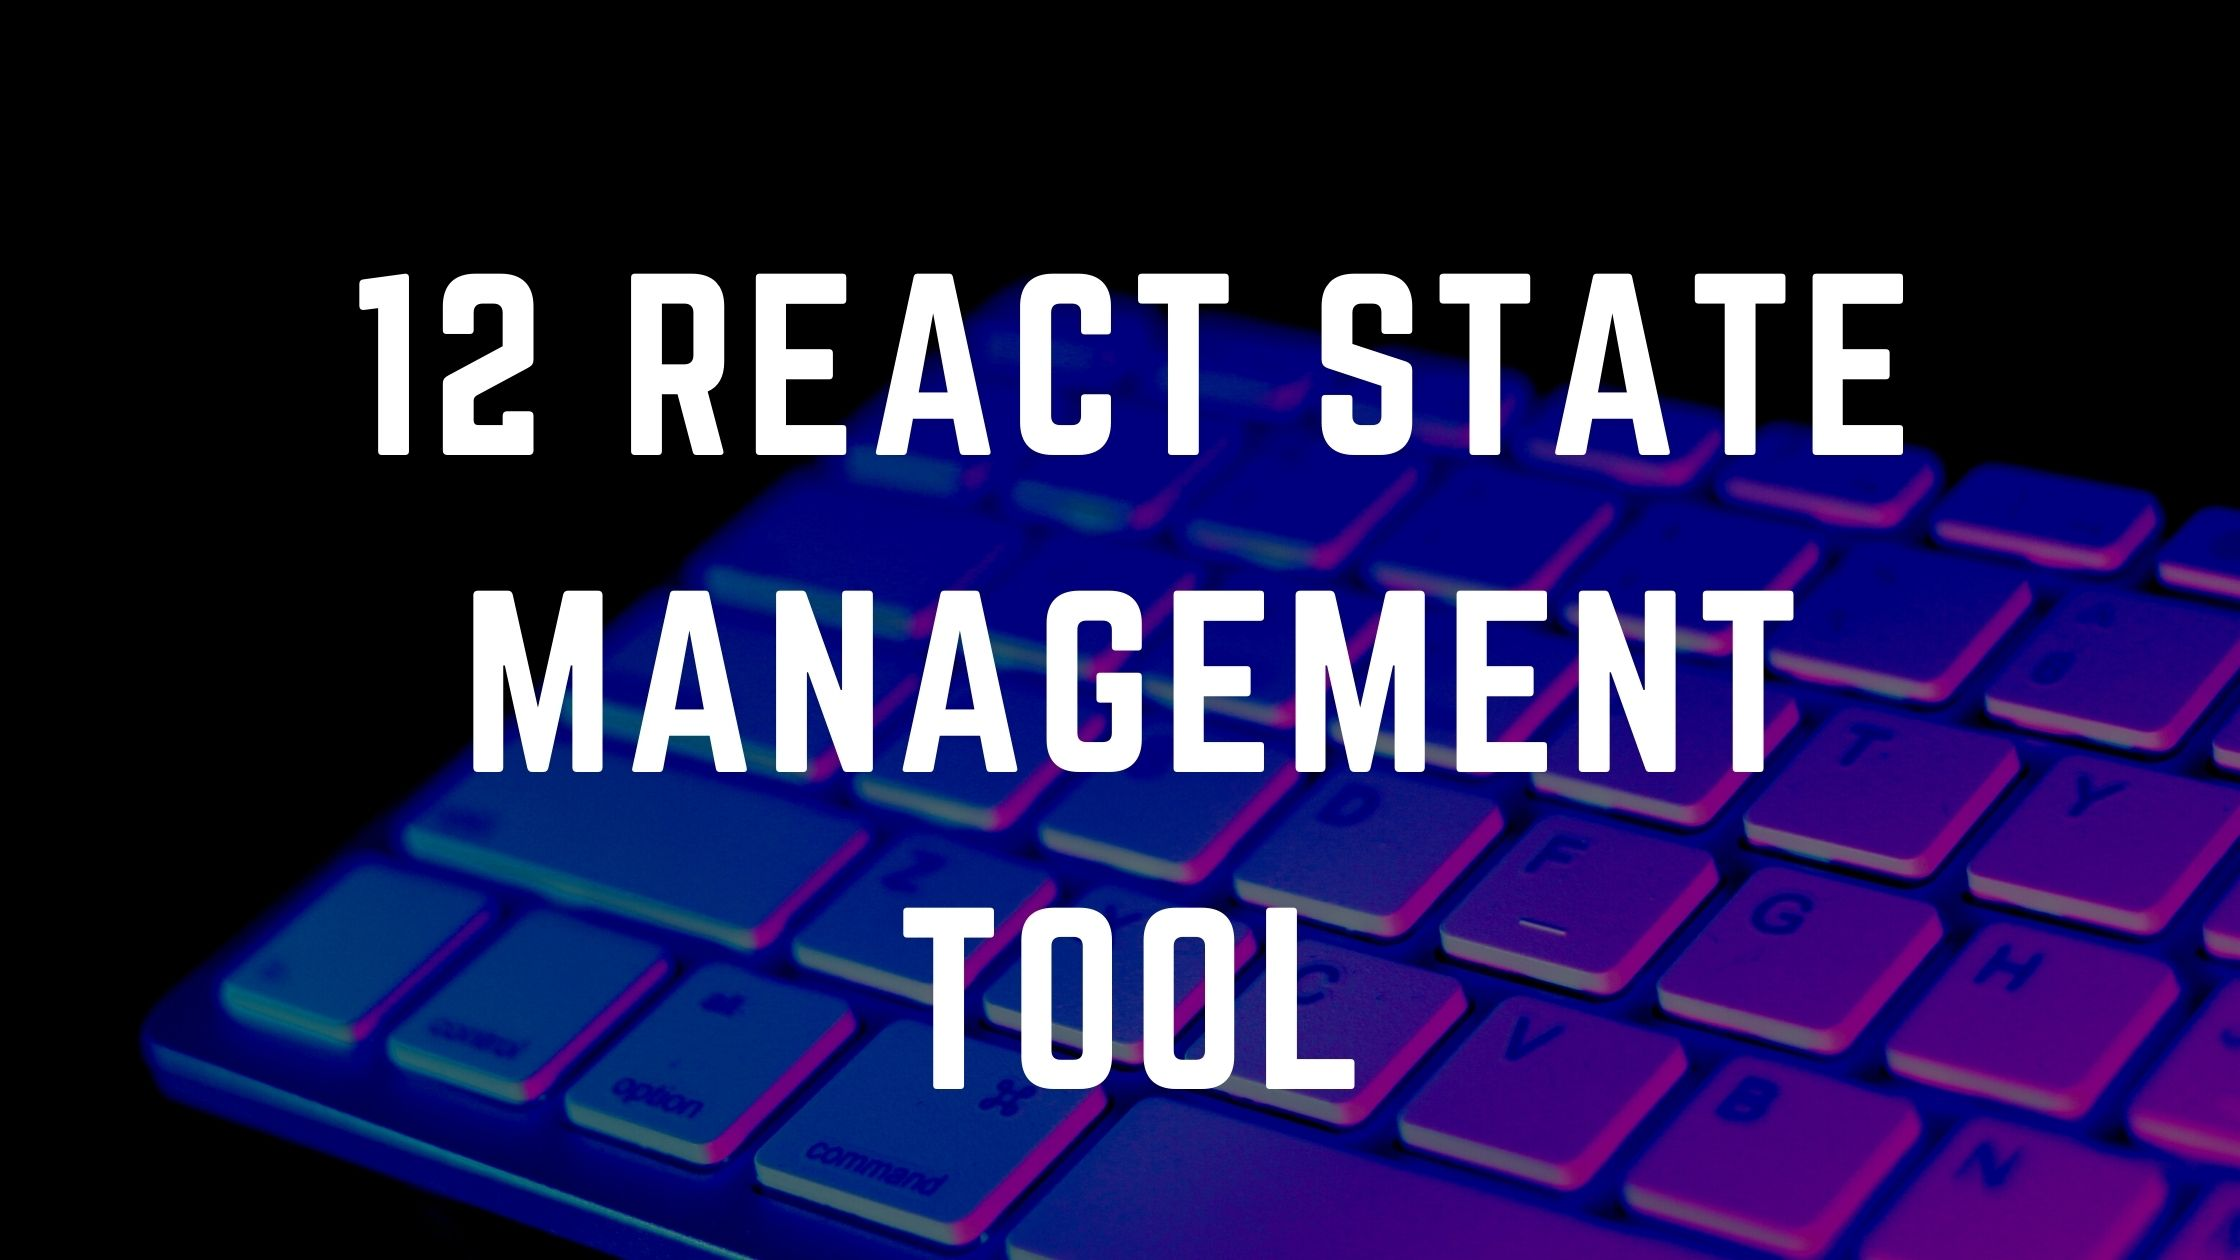 12 React State Management Tool